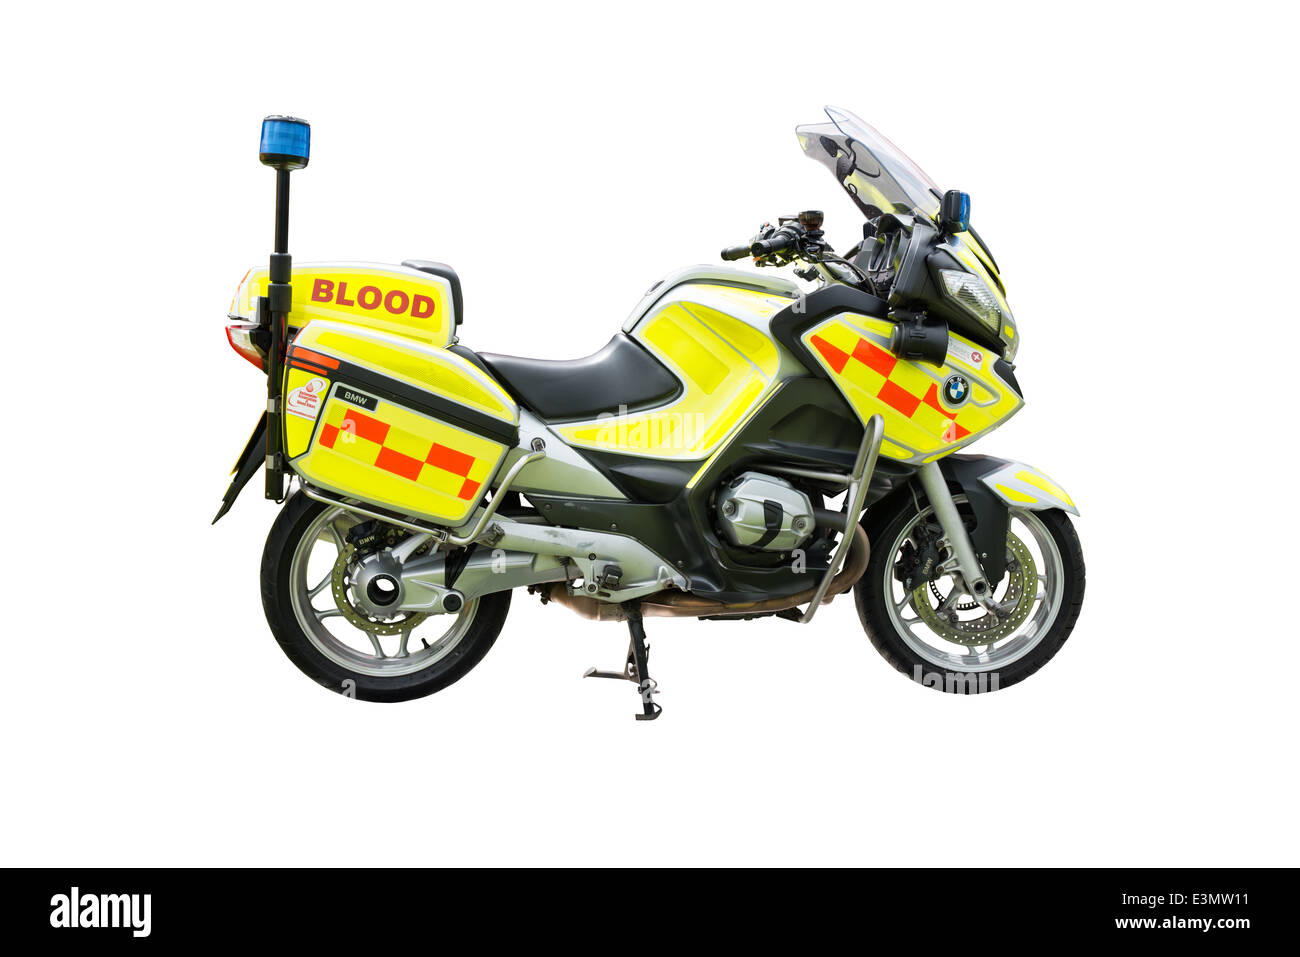 A cut out of a BMW, emergency blood & human tissue delivery motorcycle - Stock Image